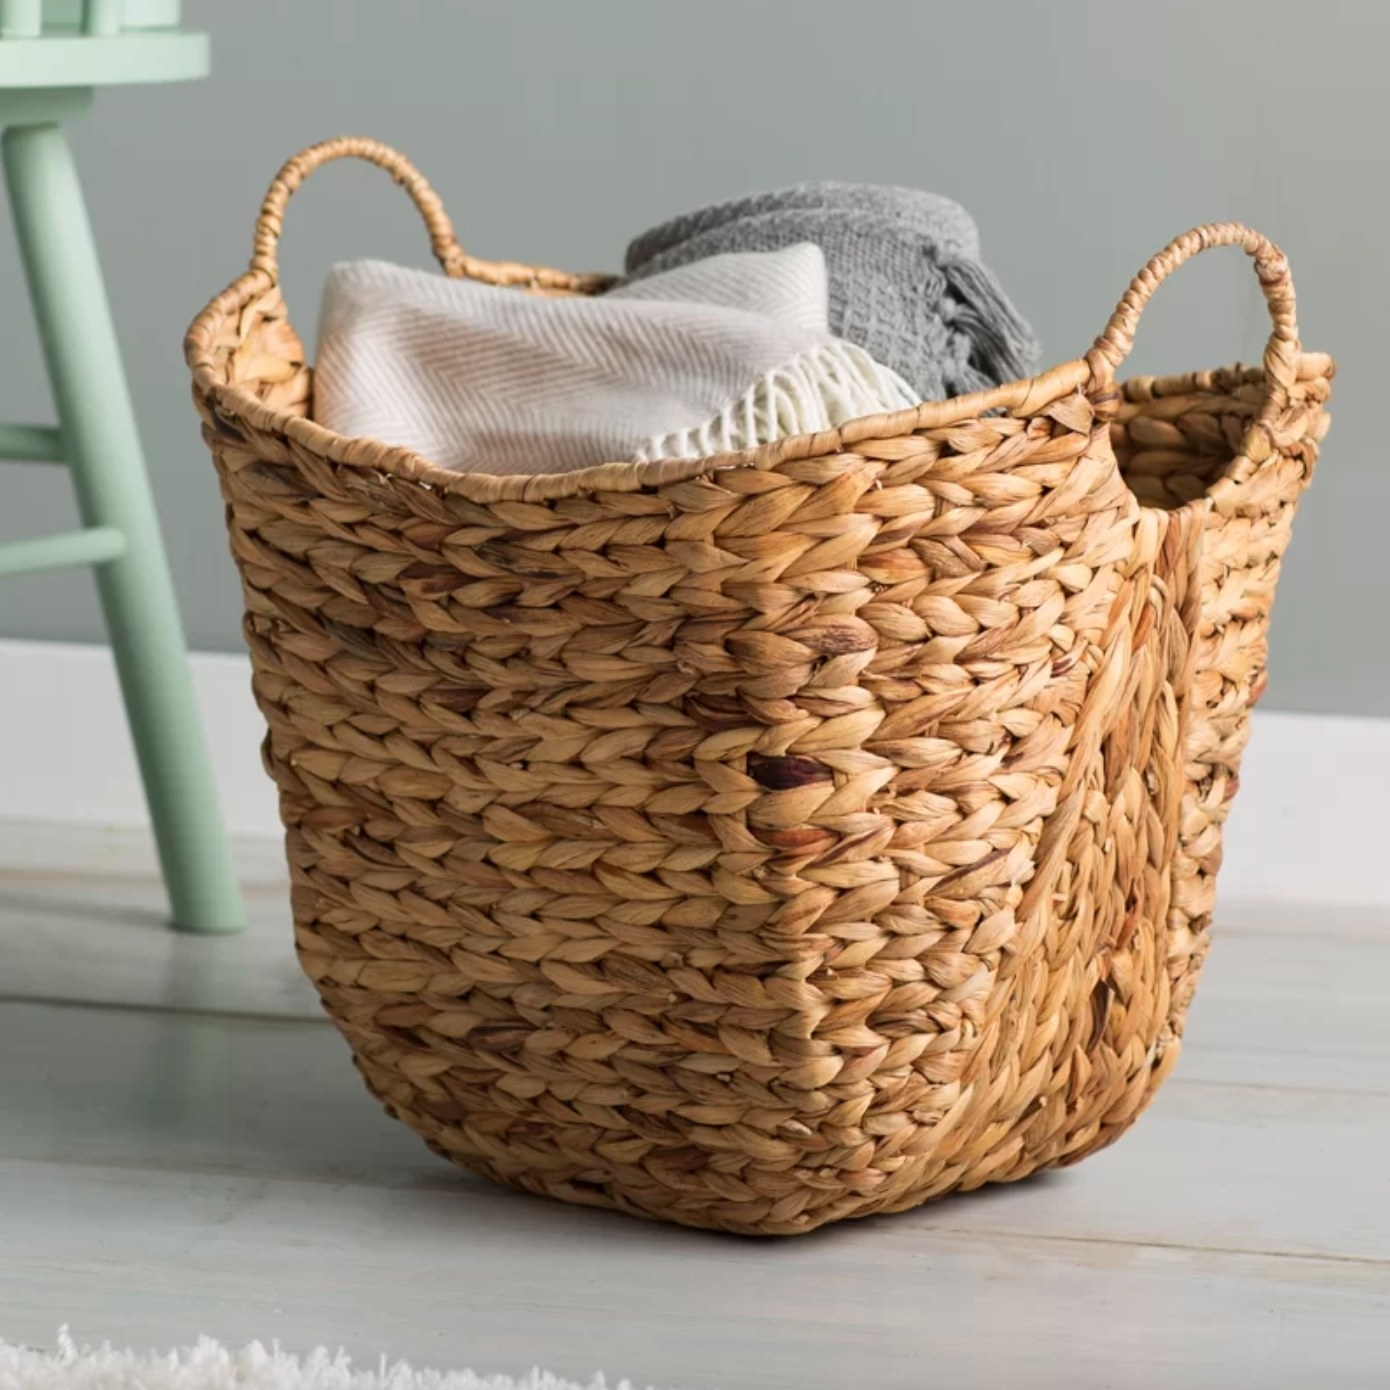 the natural colored wicker basket